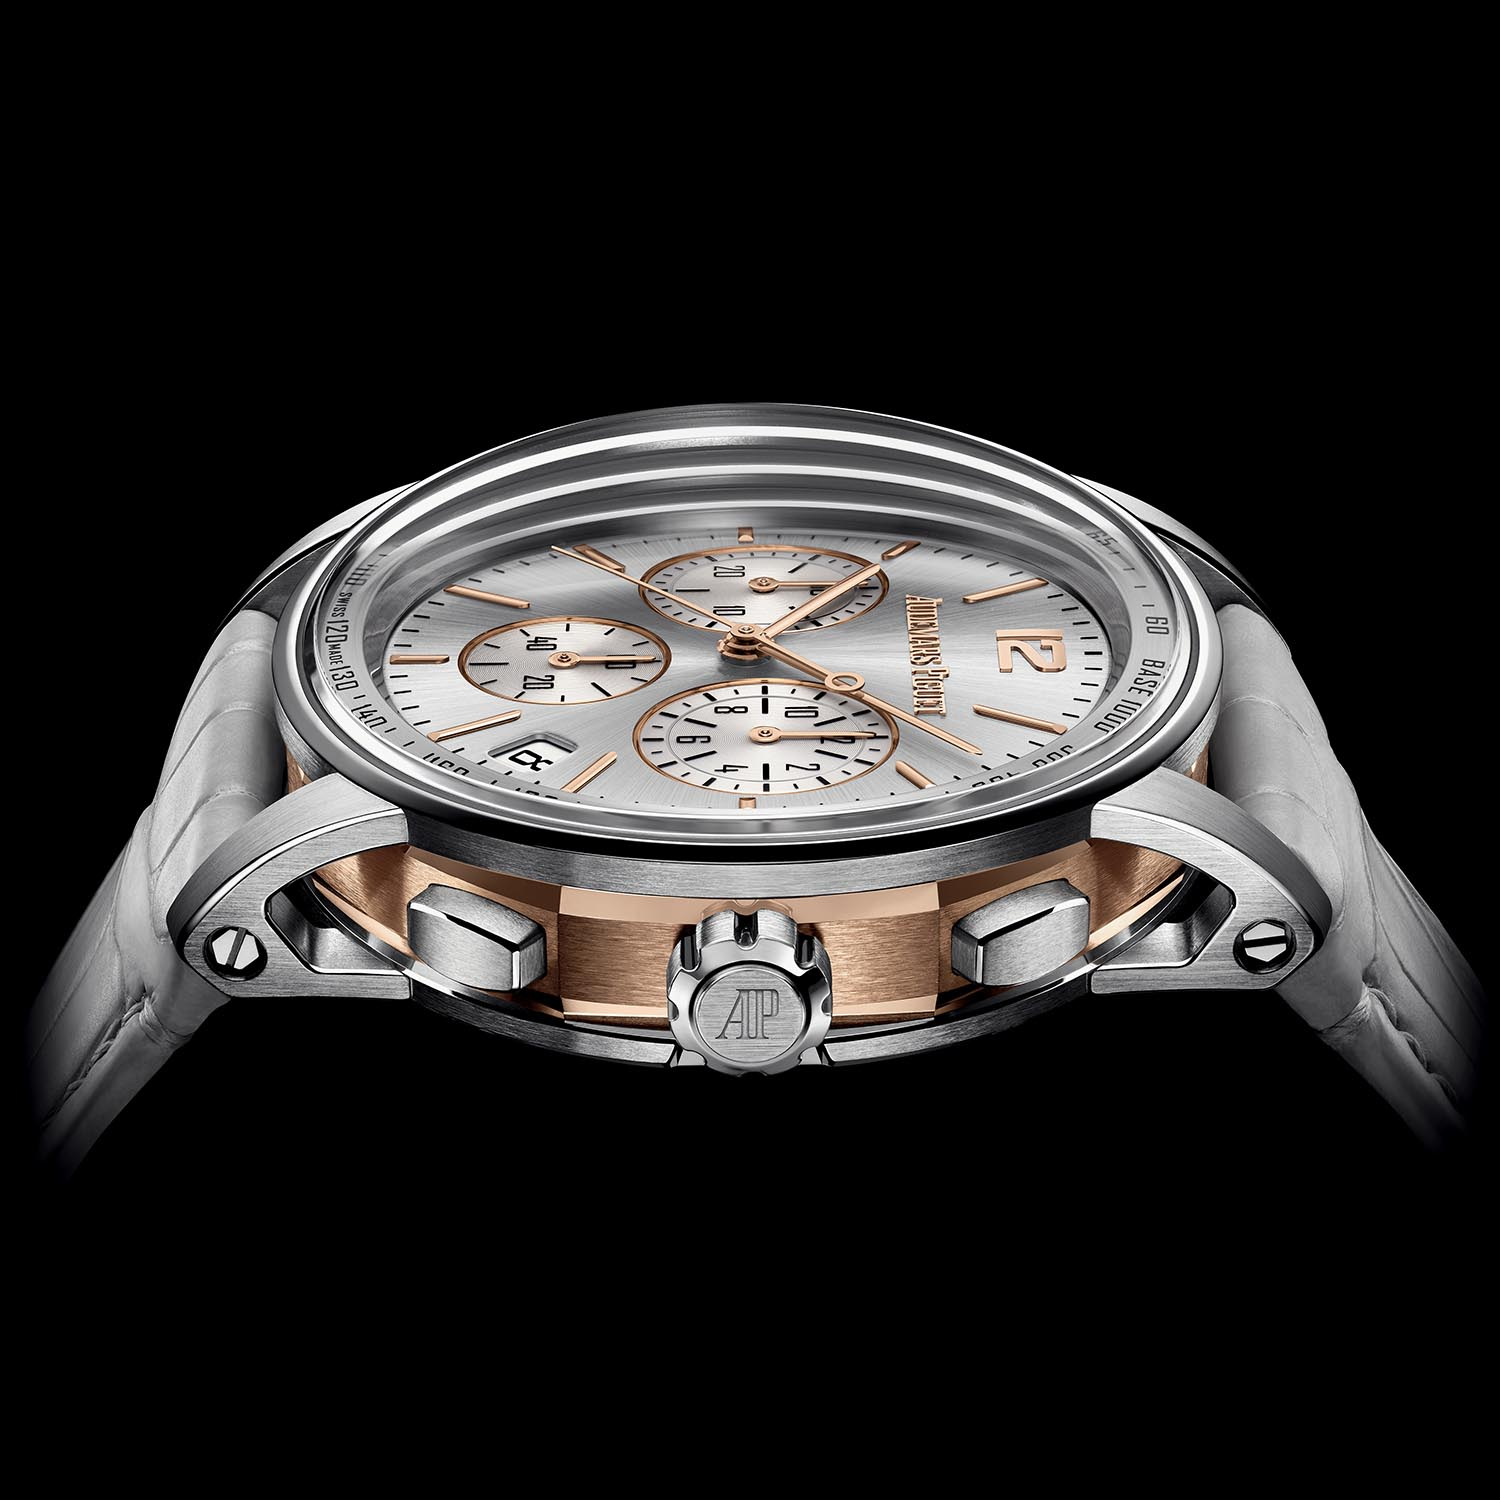 Code 11.59 By Audemars Piguet 2020 smoked Dials Two-Tone Cases - 8